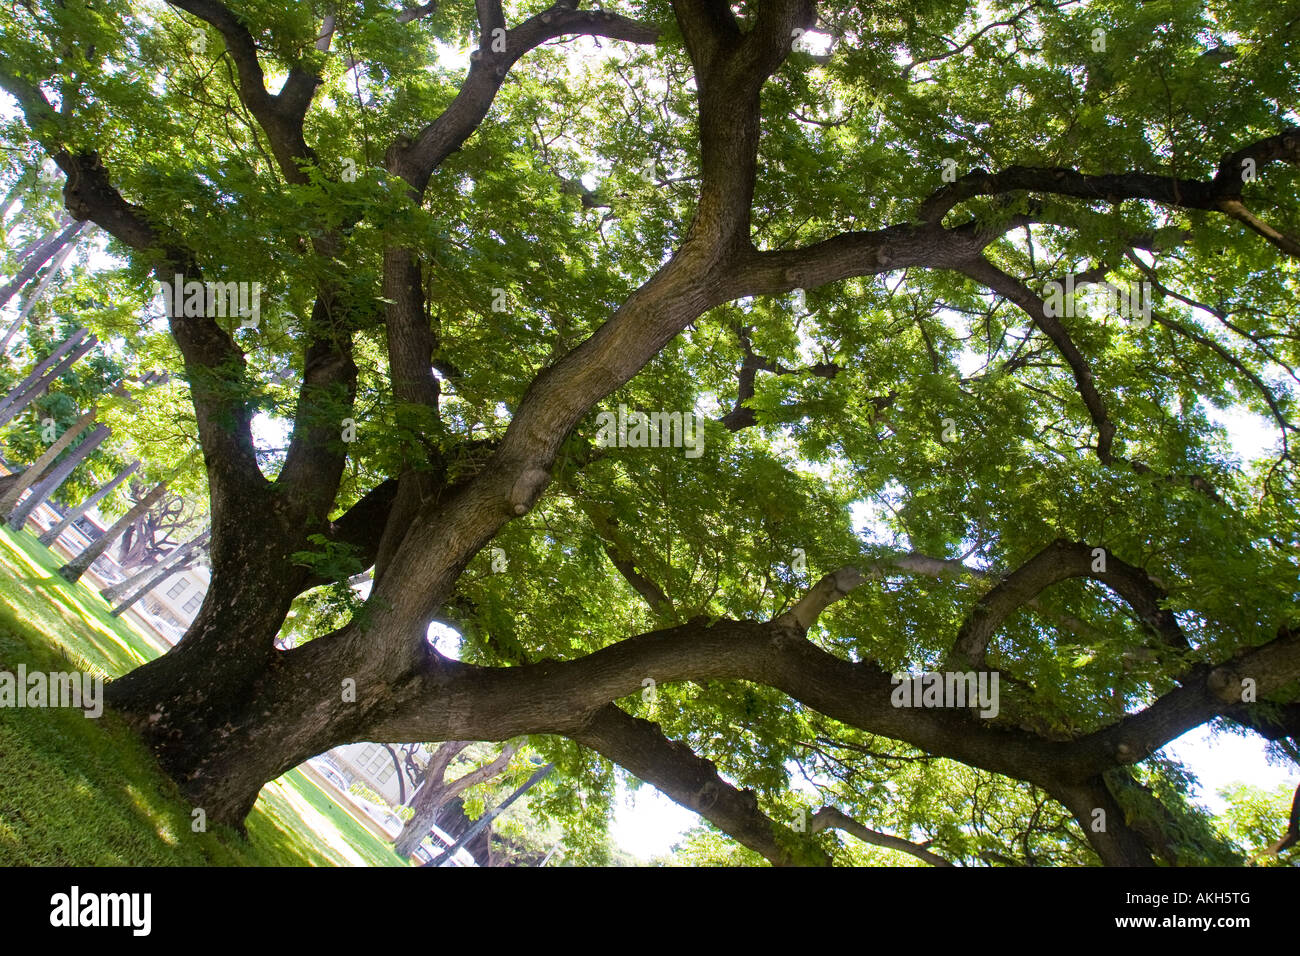 Monkey Pod Tree also called Rain Tree or ohai on Oahu Hawaii - Latin name is Samanea Saman - Stock Image